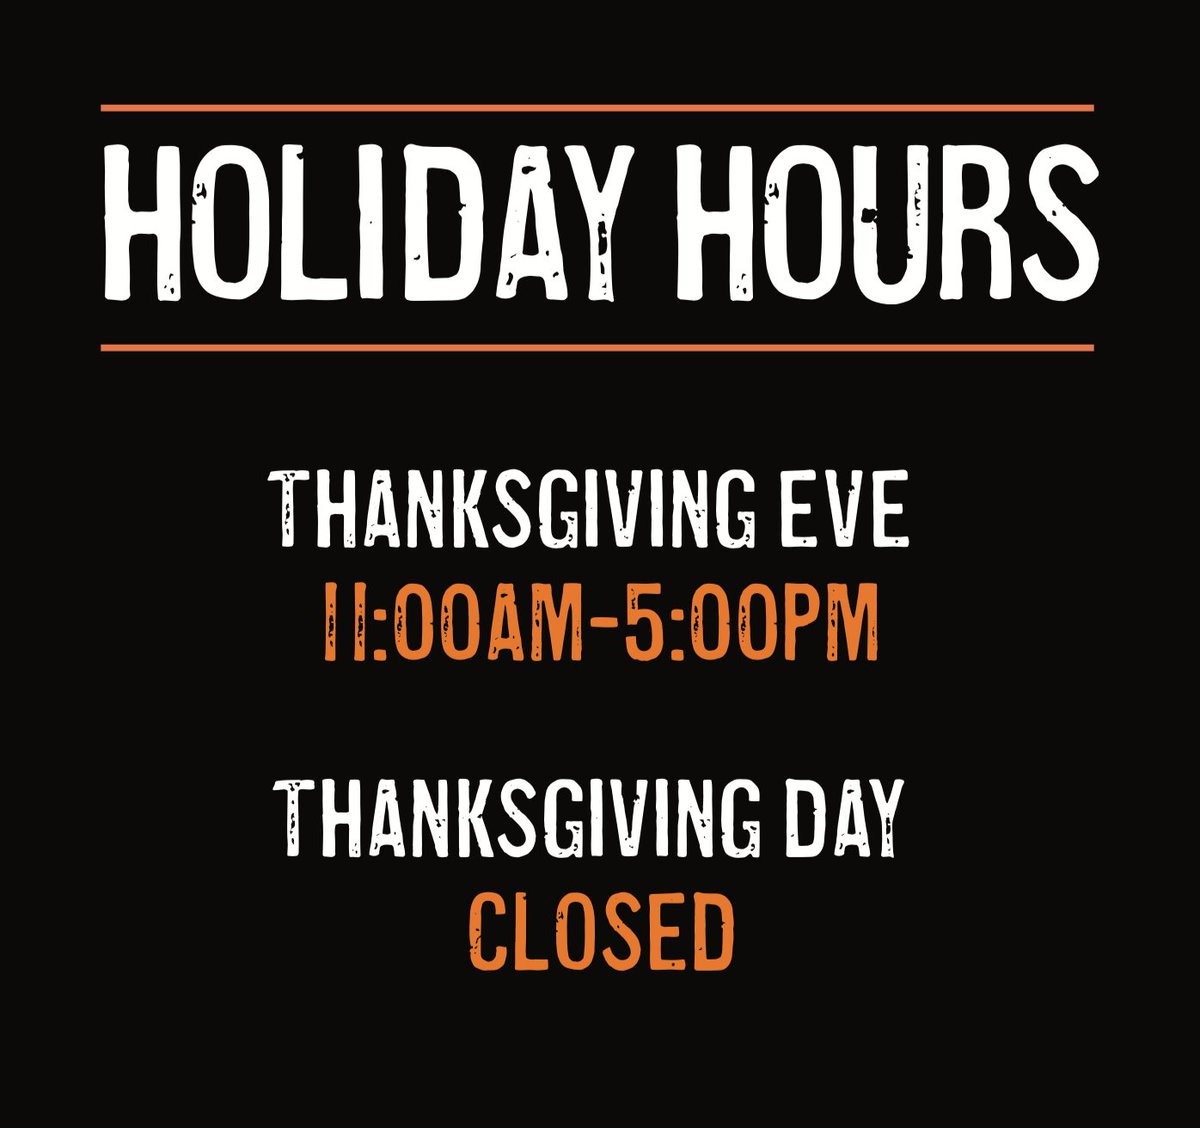 CLOSING AT 5PM TODAY. Our Teammates will be enjoying the holiday as we close early today and all day on Thanksgiving. We'll be back, as always, eager to serve you on Friday. Hope you have a wonderful holiday. Happy Thanksgiving. https://t.co/tUeQEFJ24S